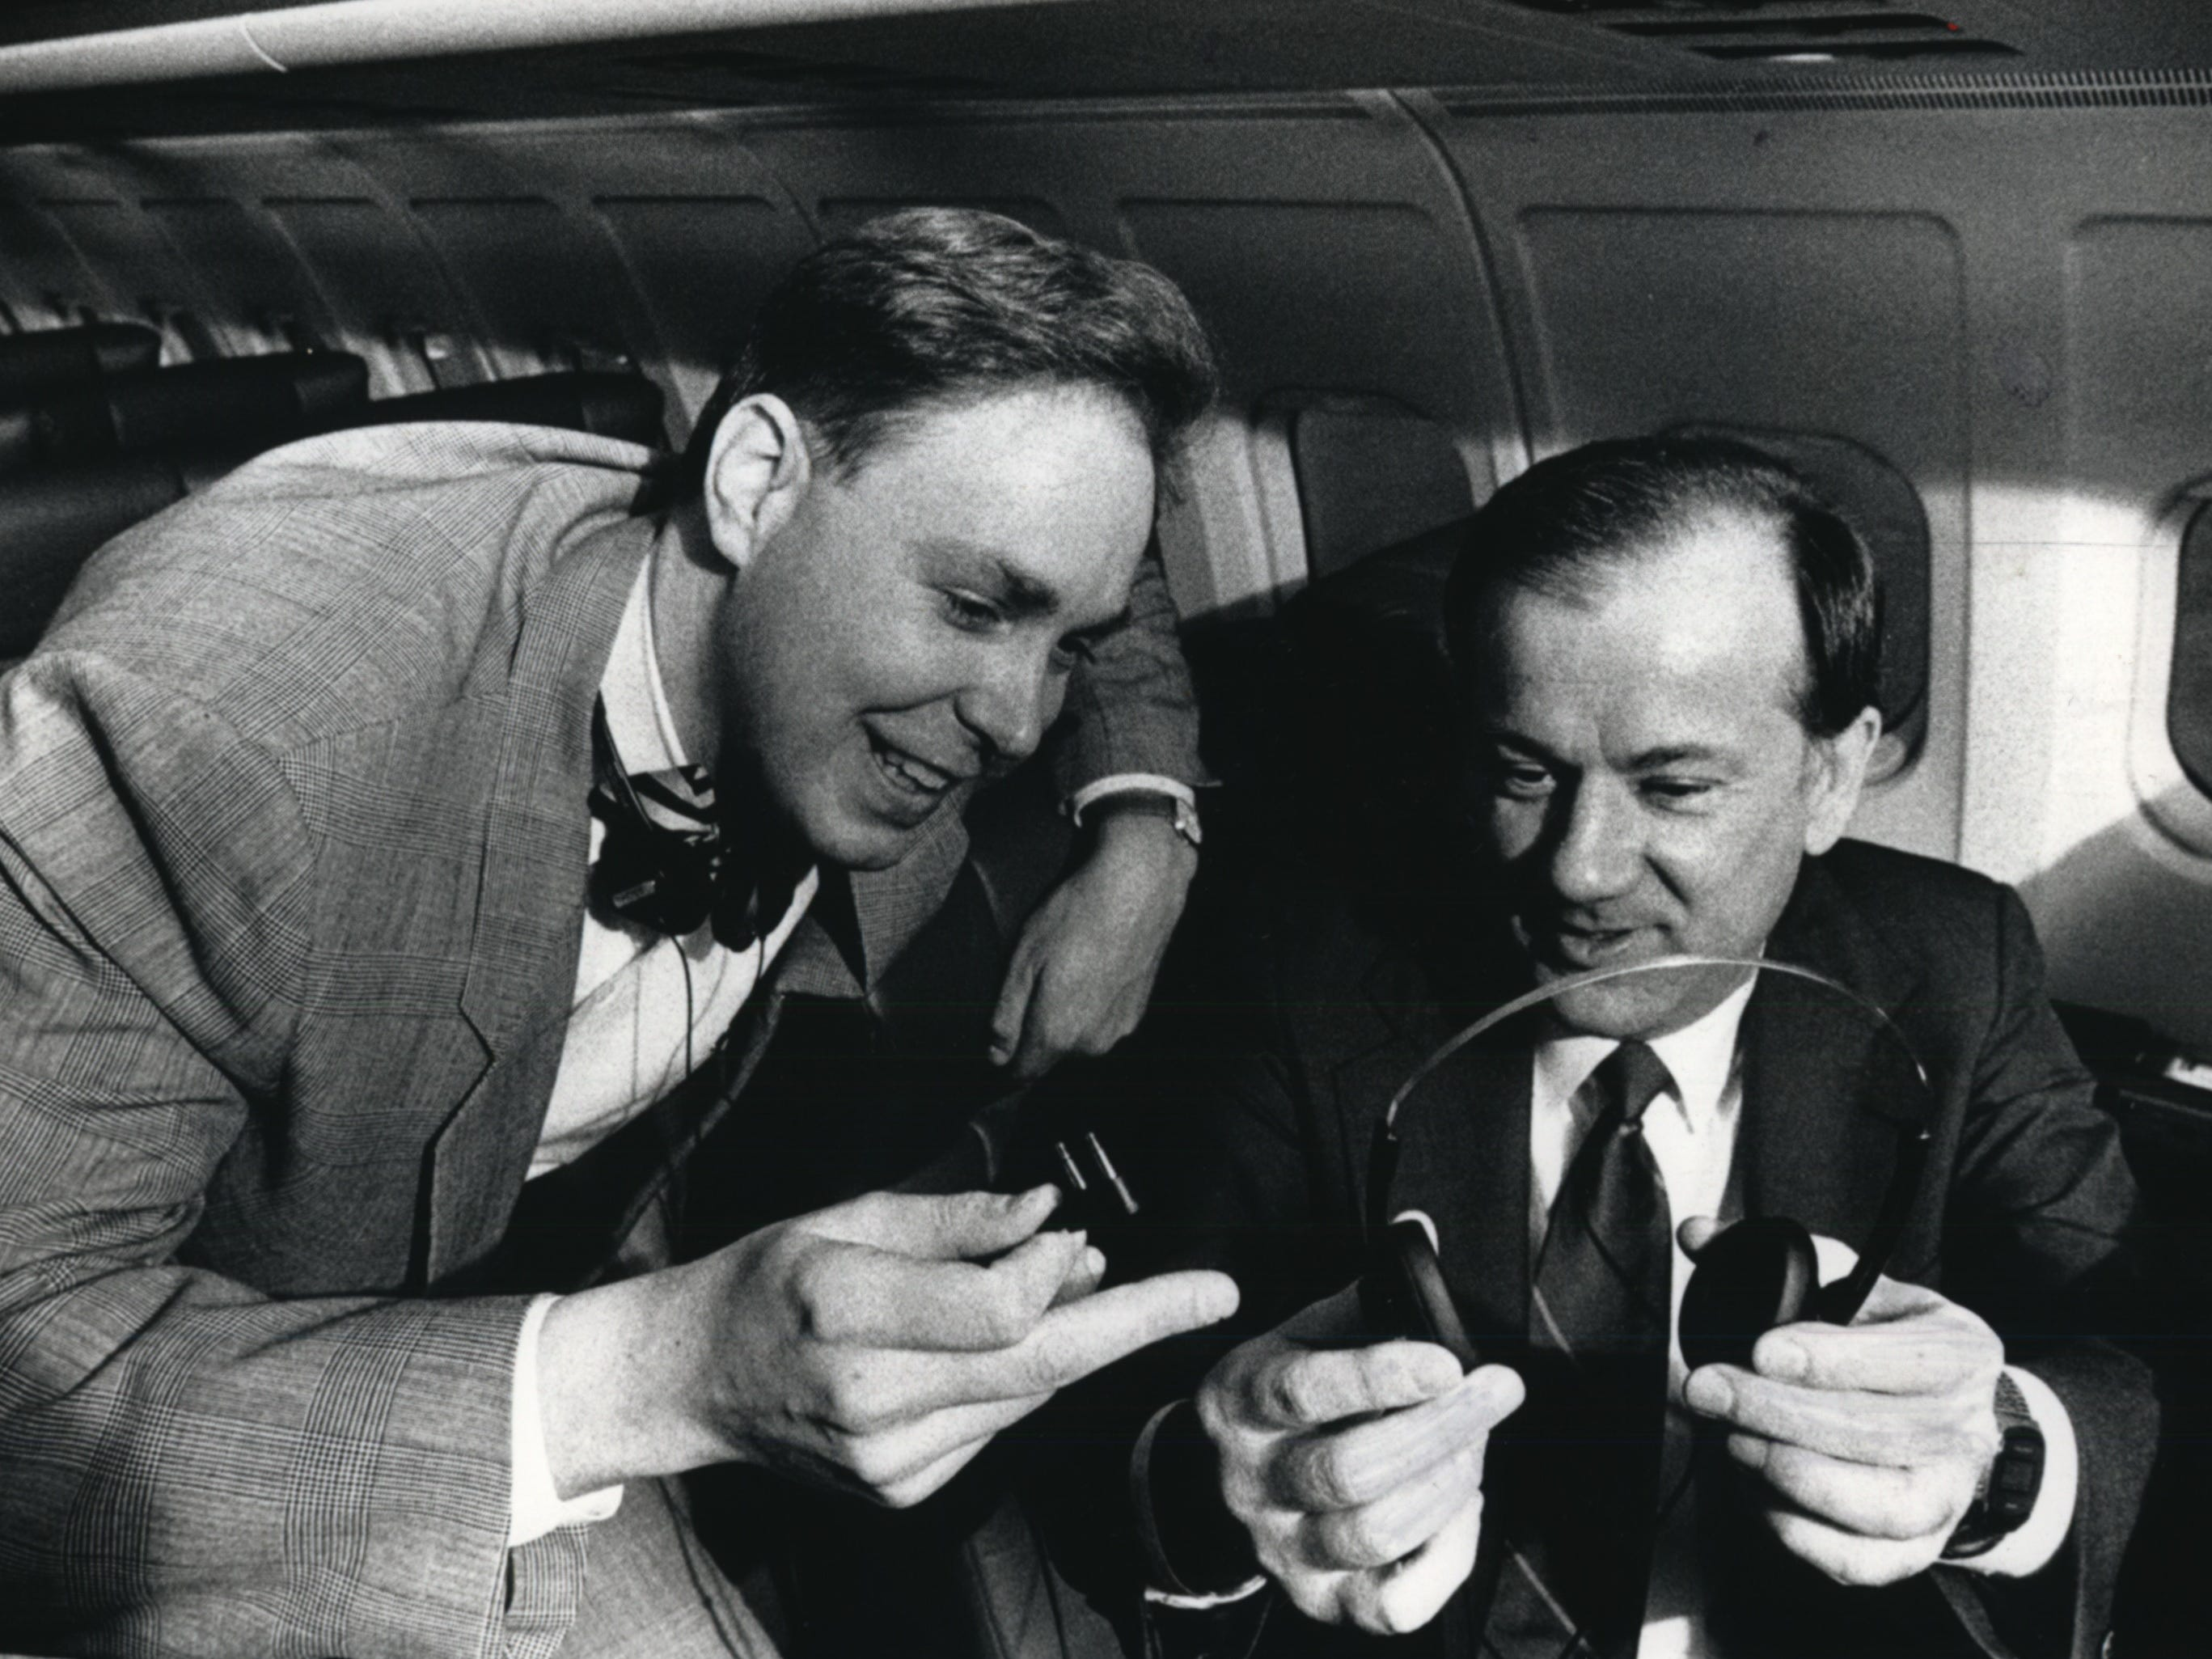 Michael J. Koss (left), president of Koss Corporation, and Timothy E. Koeksema, president of Midwest Express Airlines, examine a pair of Koss TD/30 headphones which were installed on the planes in 1990.